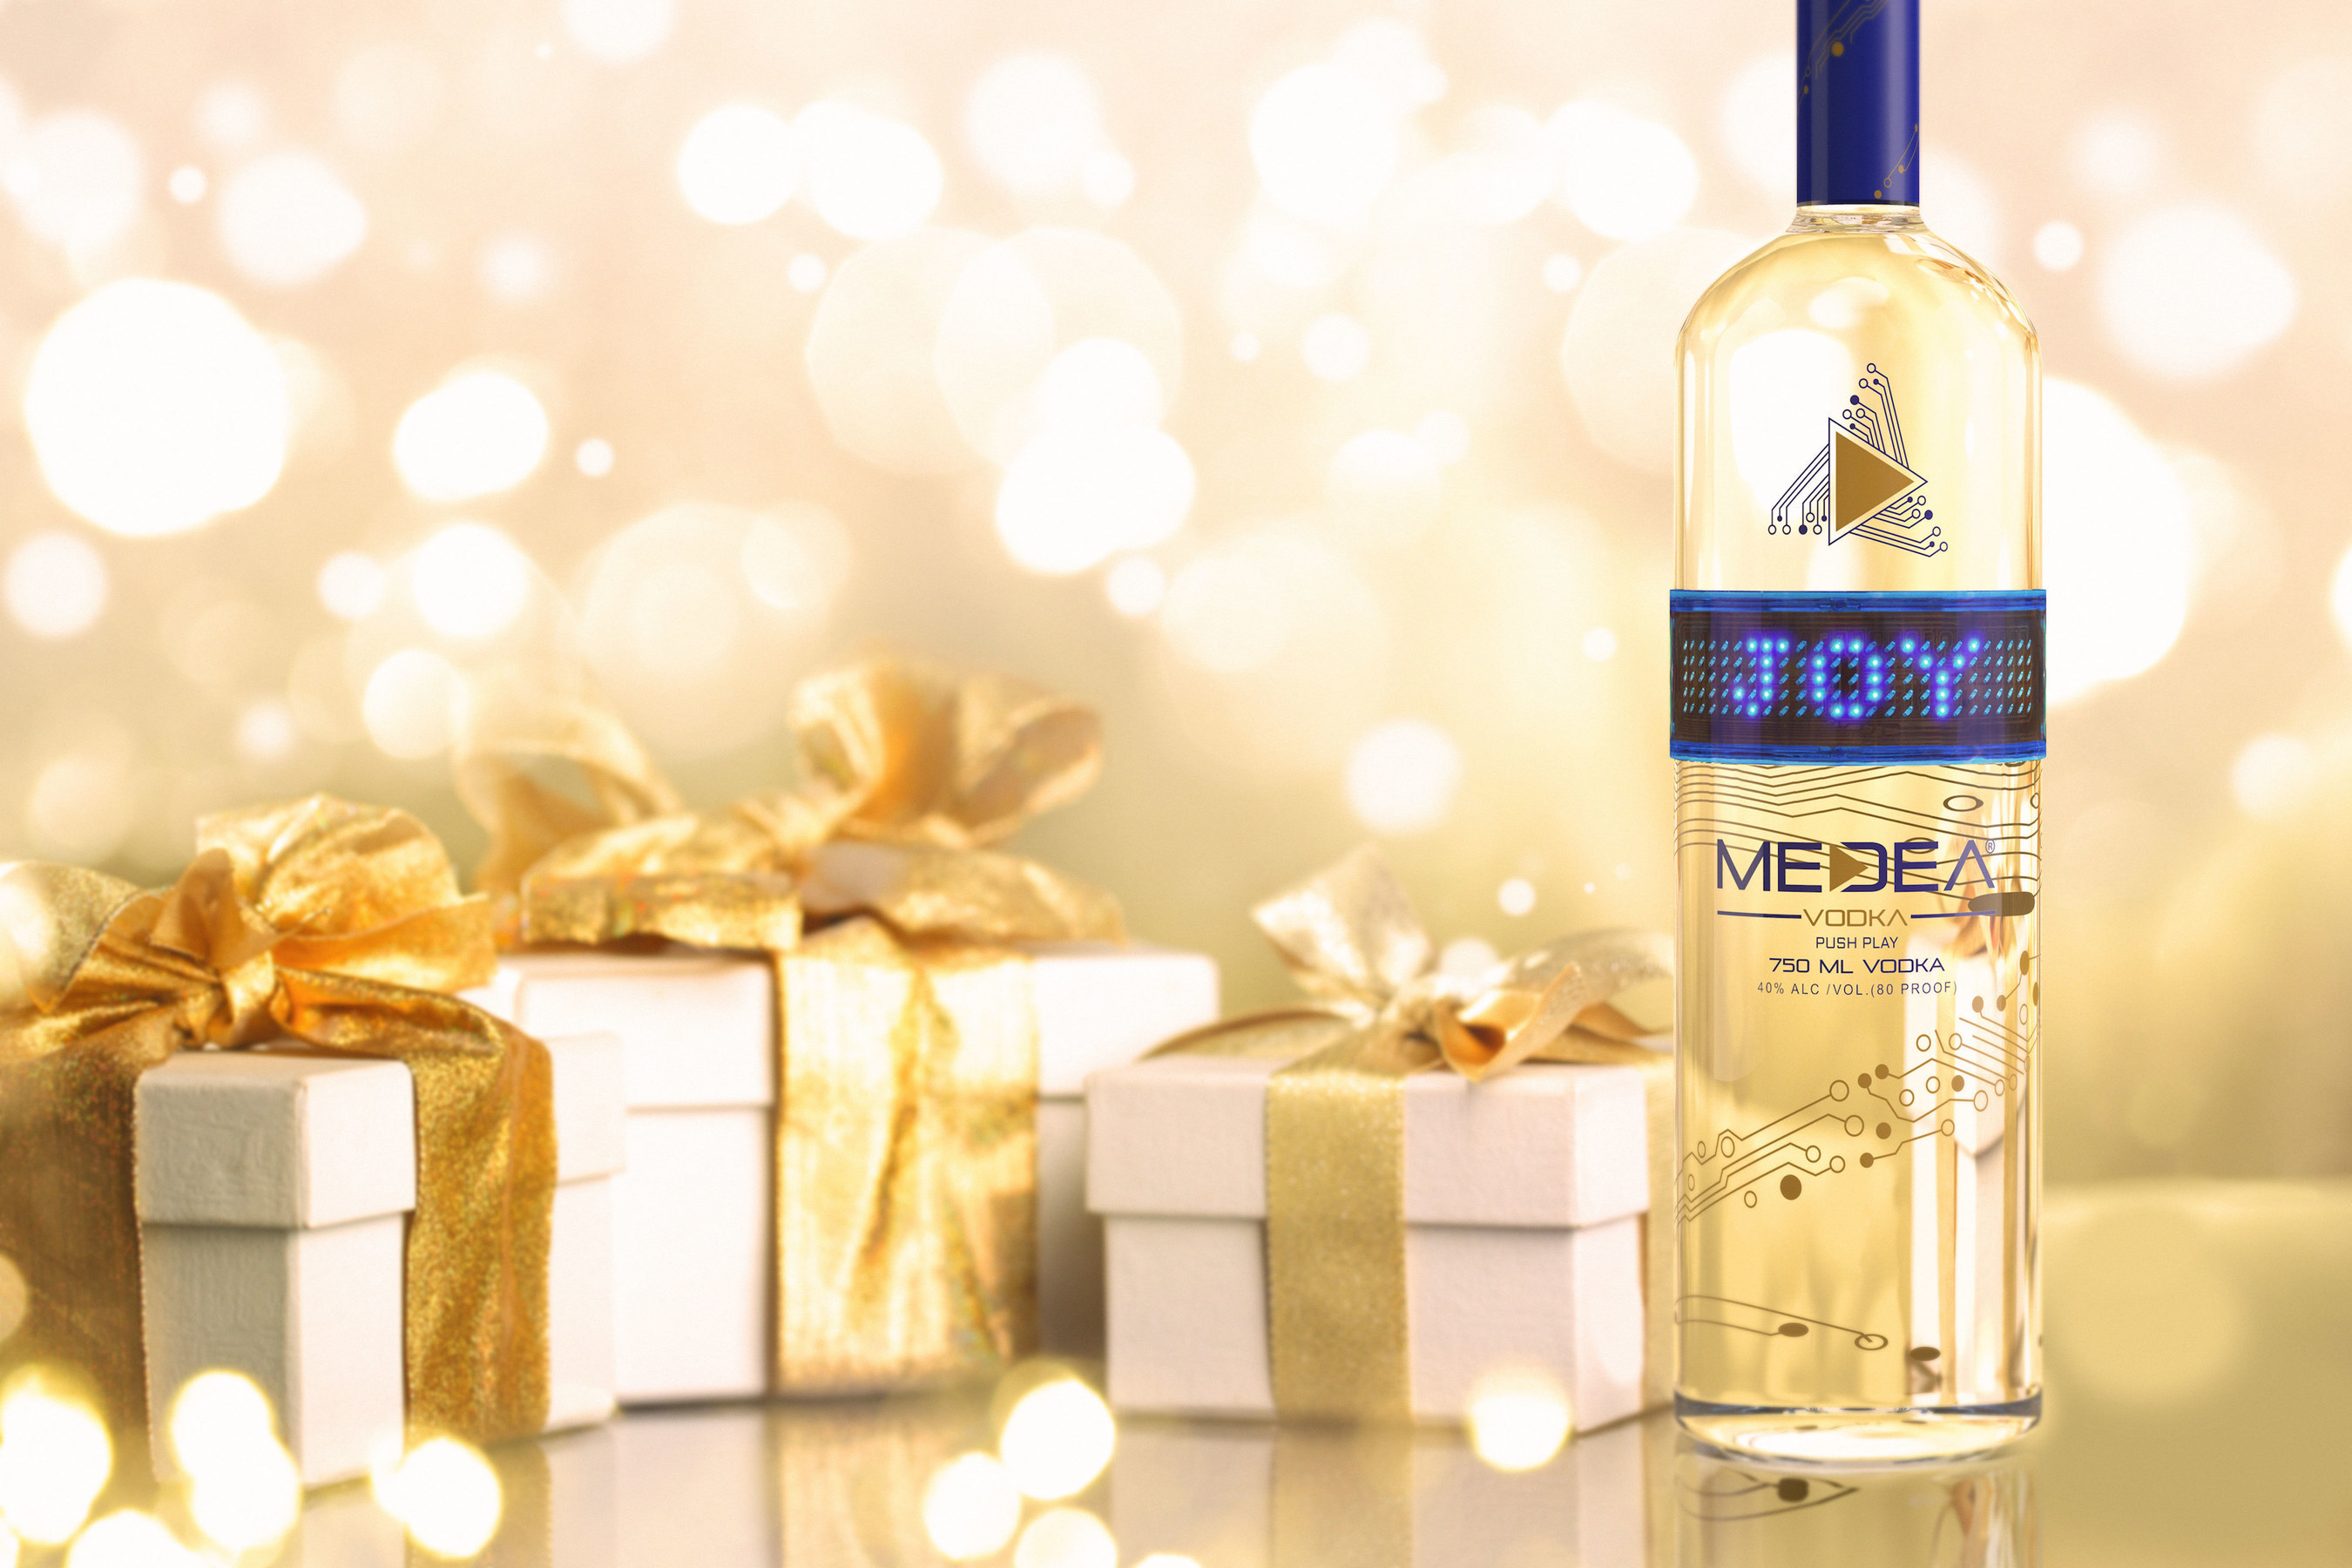 Medea Vodka new bluetooth programmable bottles send the perfect message just in time for the holiday season.